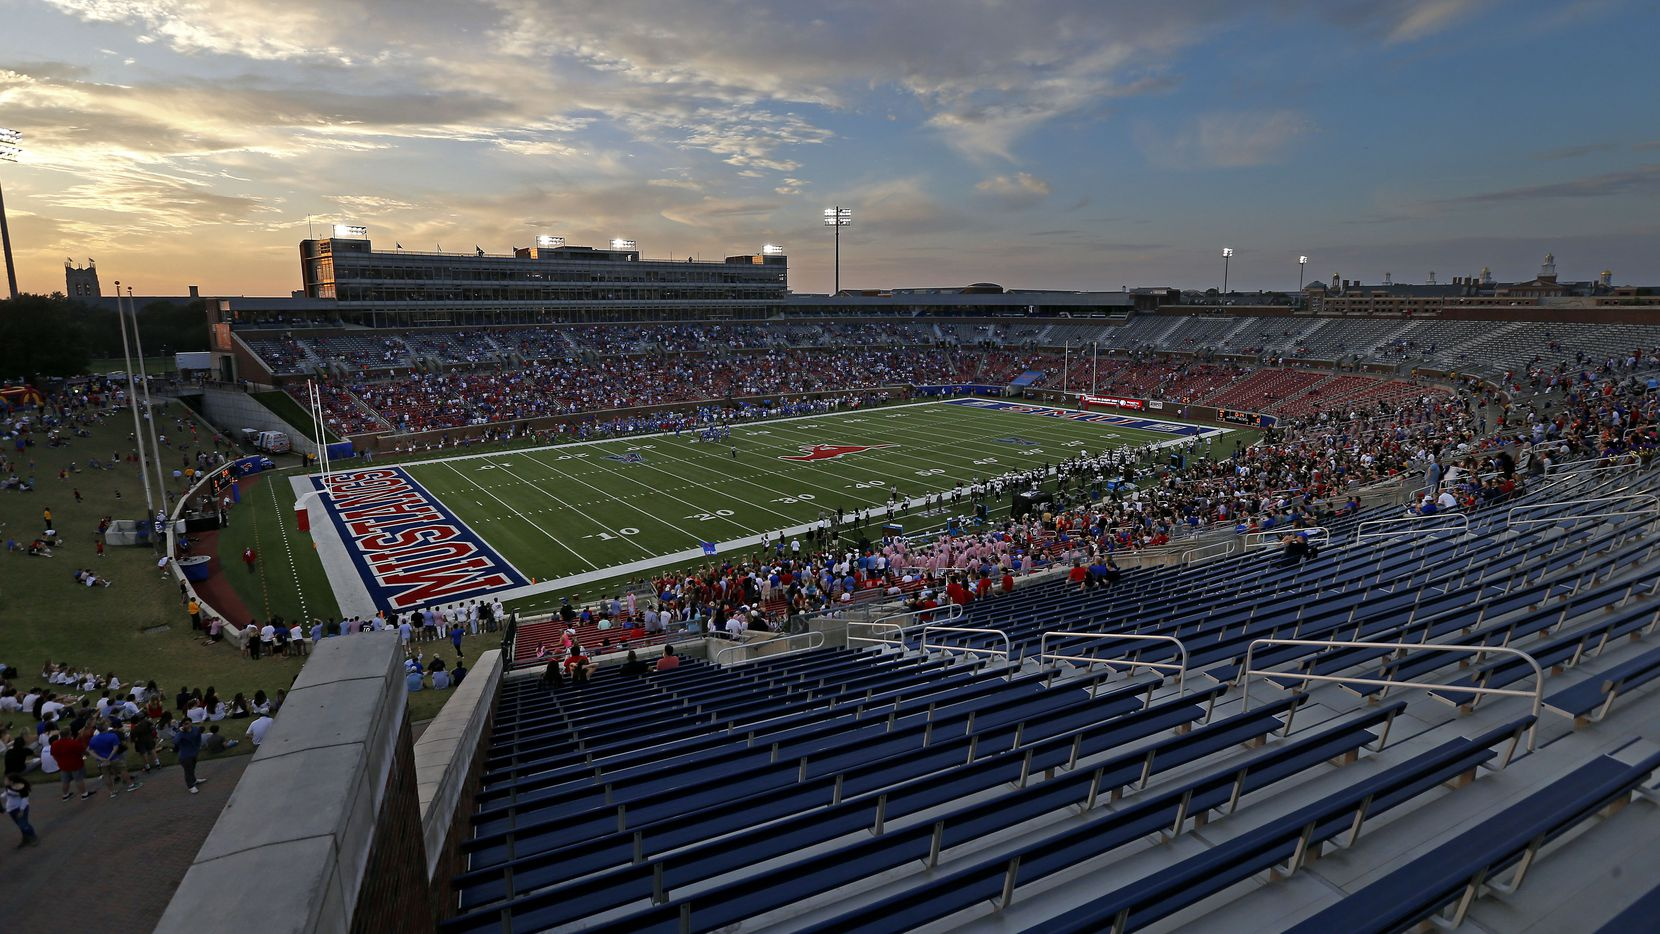 SMU responded to the lawsuit alleging rape by a current Mustangs football player, as well as an insufficient Title IX investigation.